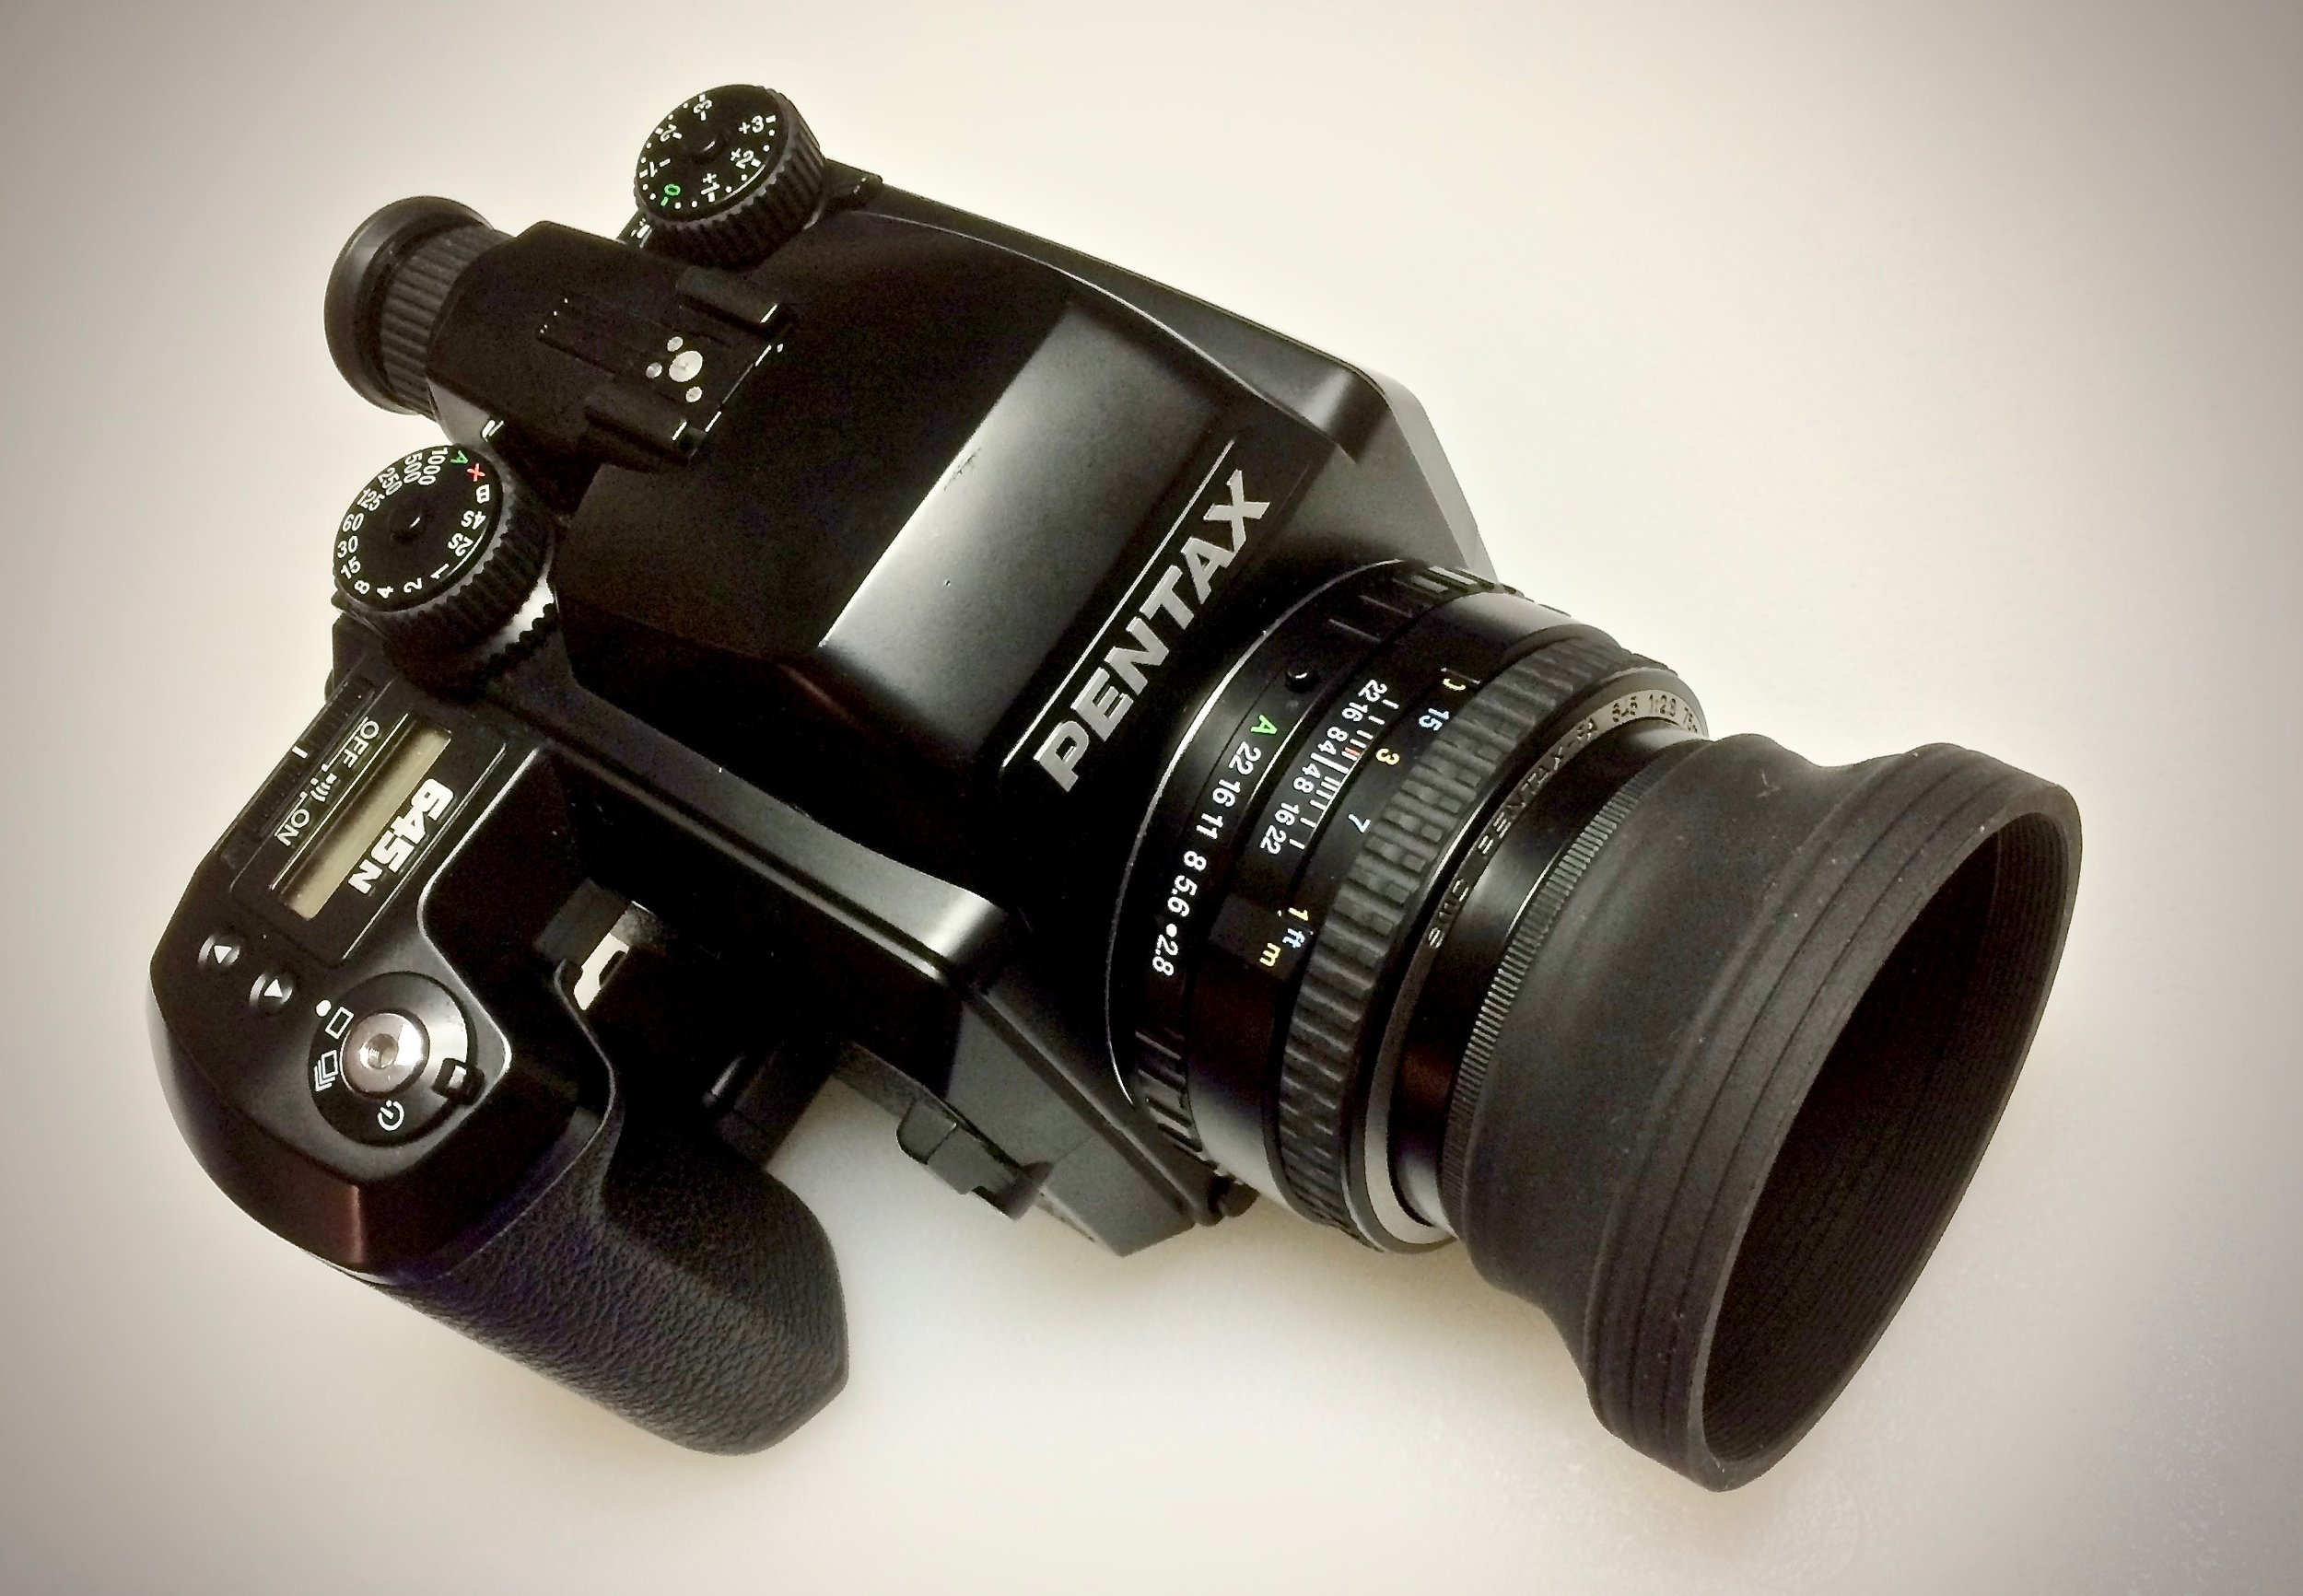 Pentax 645n with Pentax SMC FA 75mm f/2.8 and collapsable lens hood